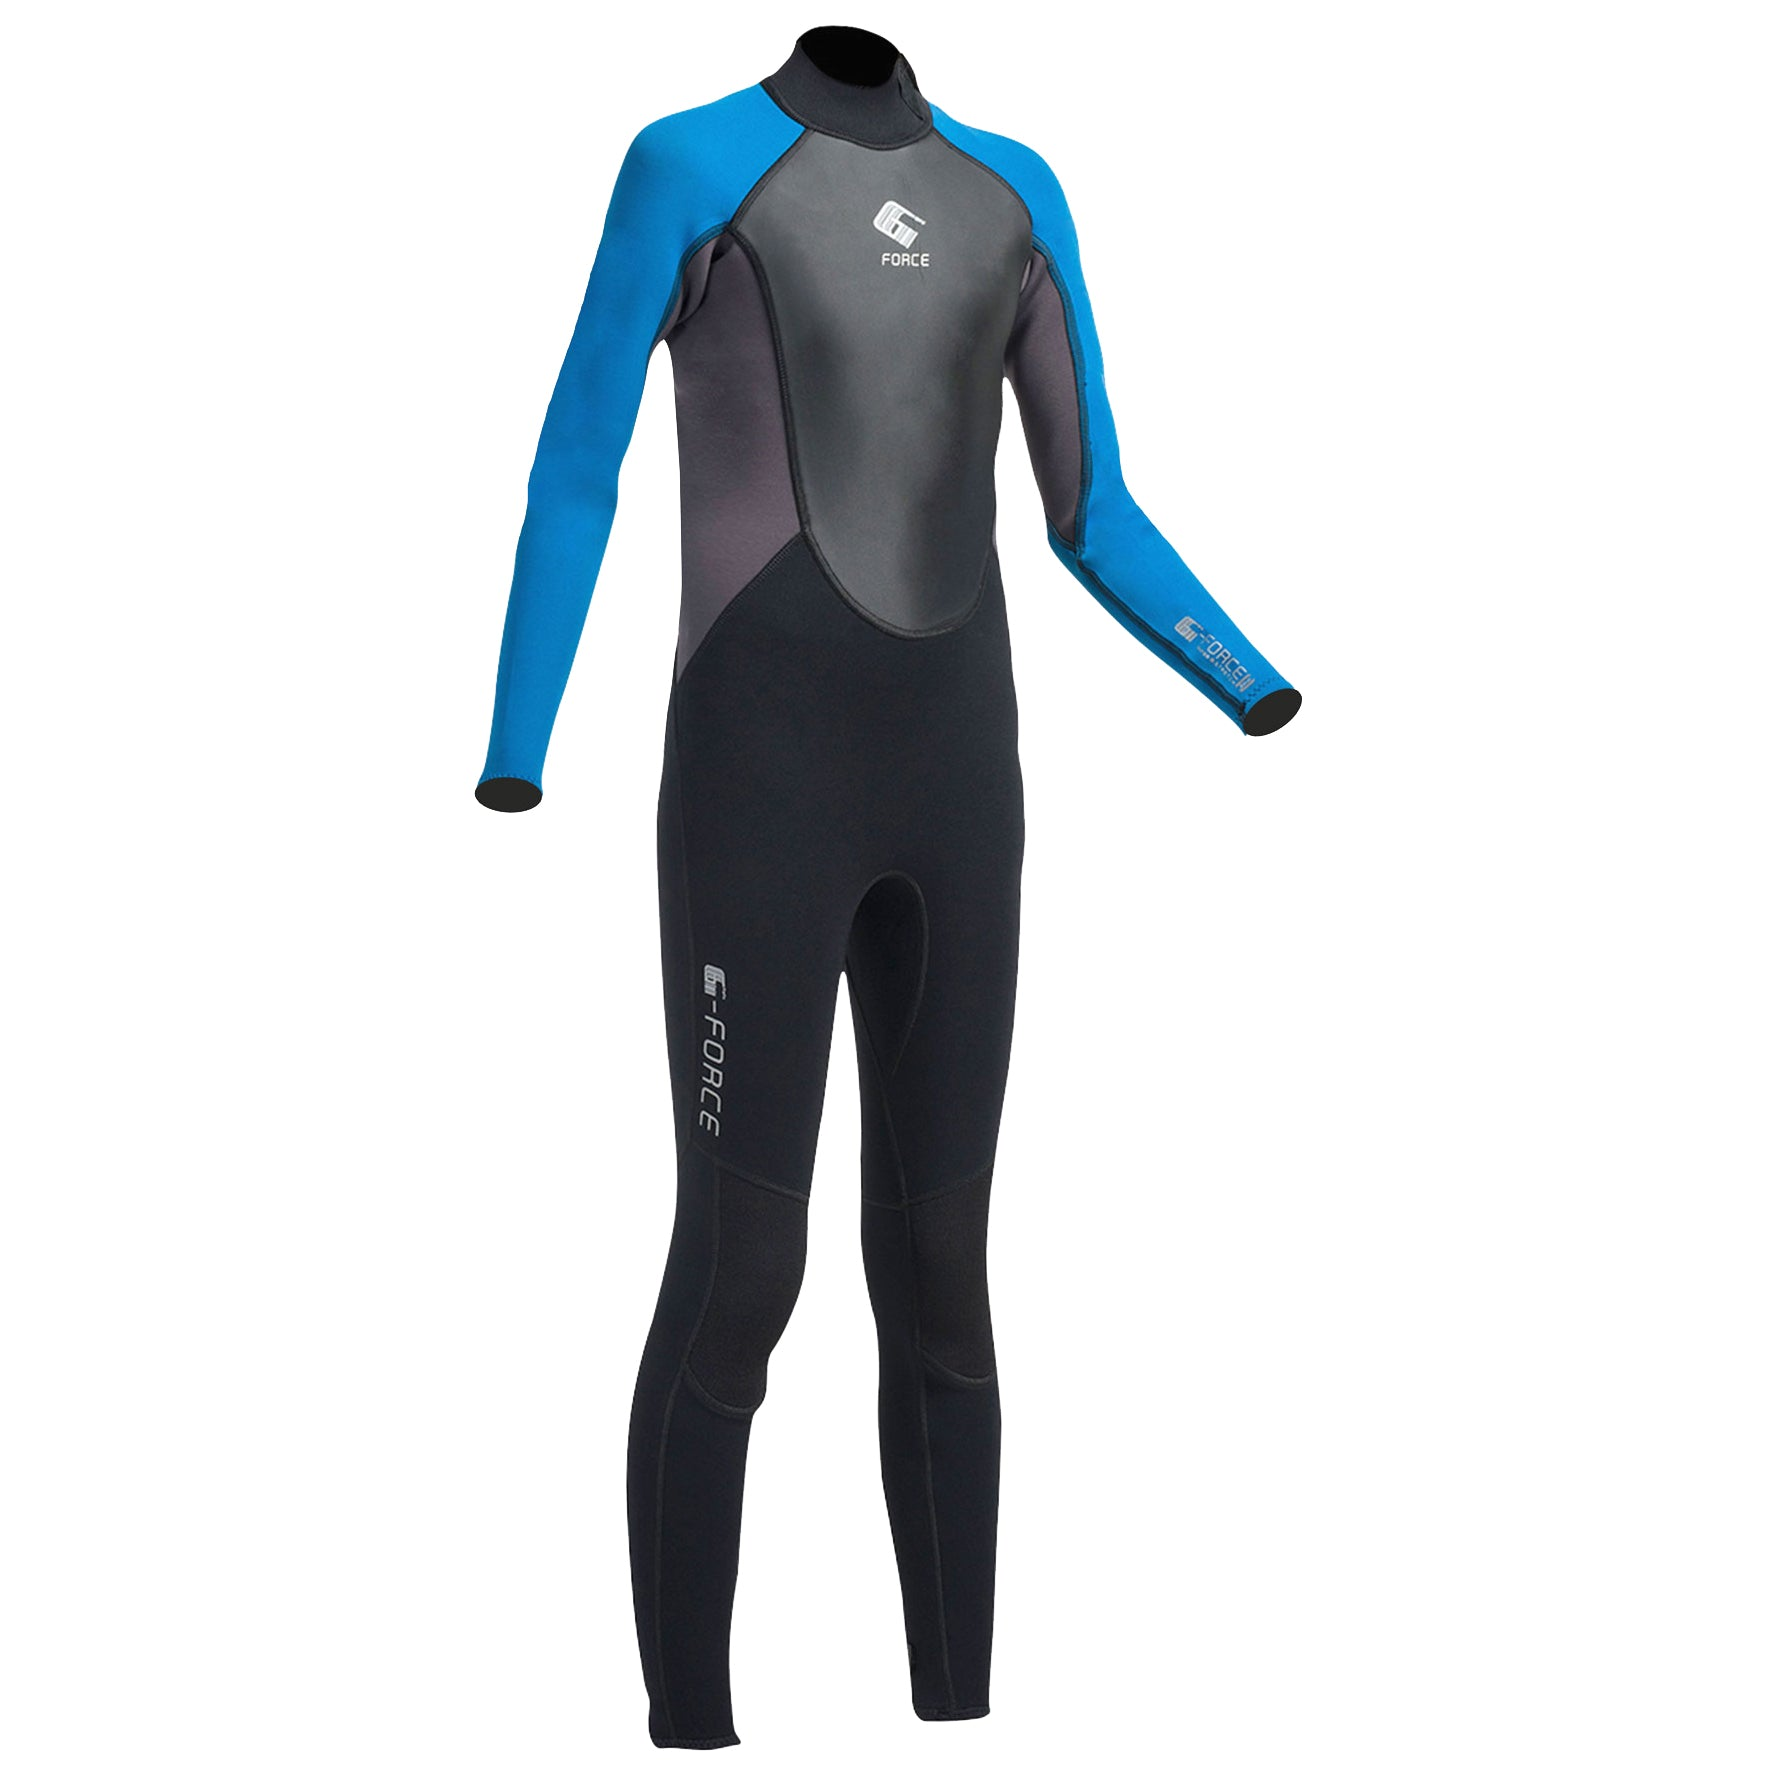 Gul Kids G-Force 3 2mm Wetsuit – Watersports Warehouse 81dcafc6a